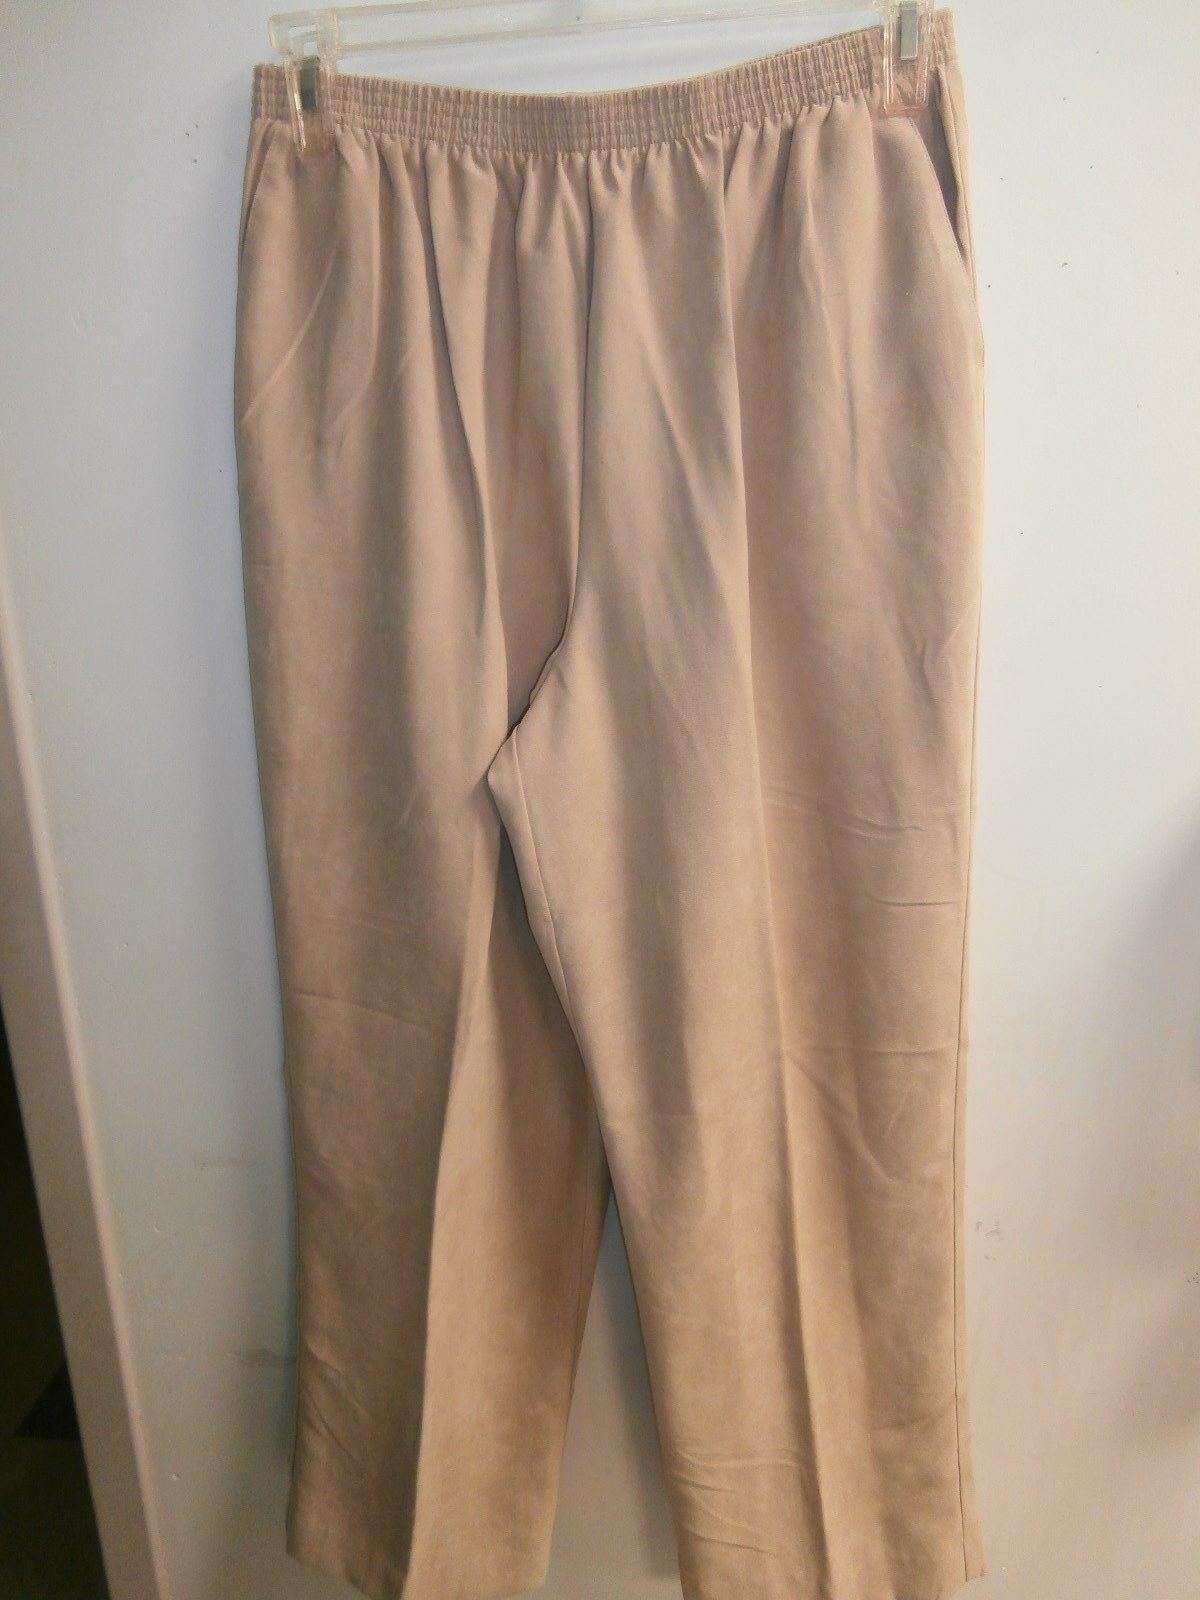 ALFrot DUNNER  sz 16 PANTS- NWOT BEIGE SOFT FEEL  10315-2